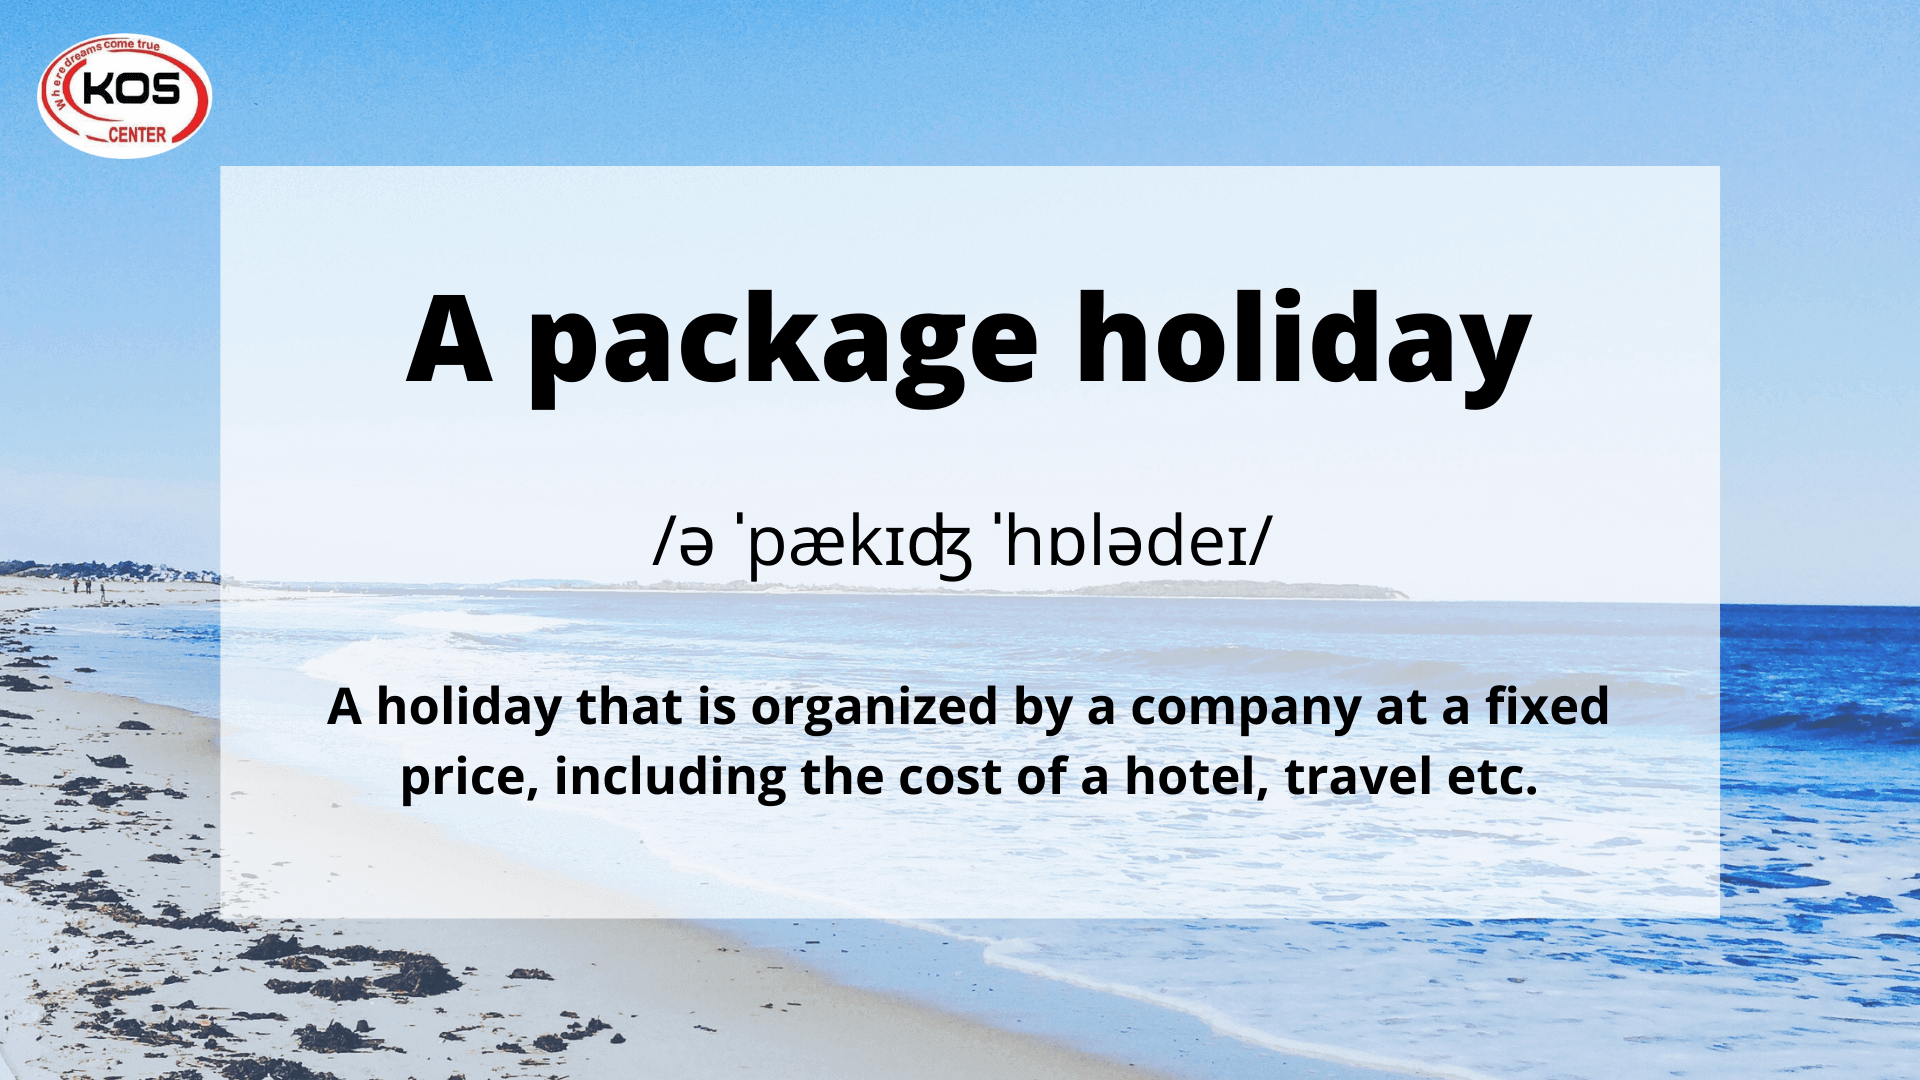 A package holiday